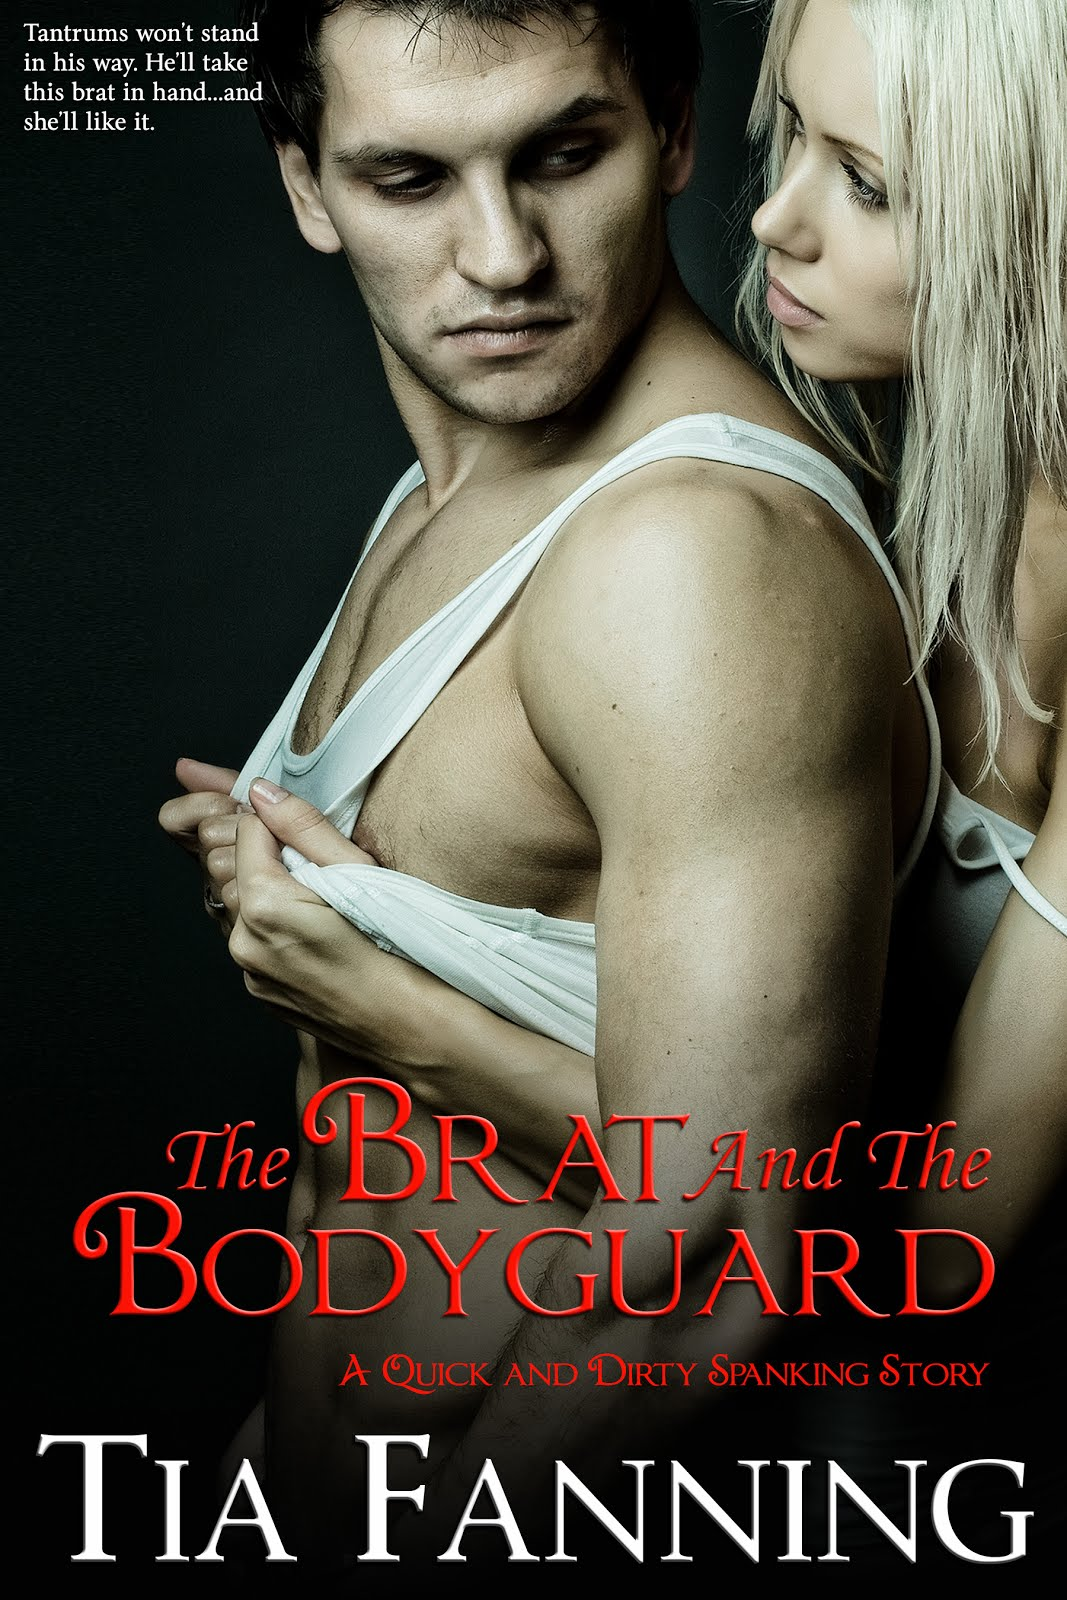 The Brat and the Bodyguard